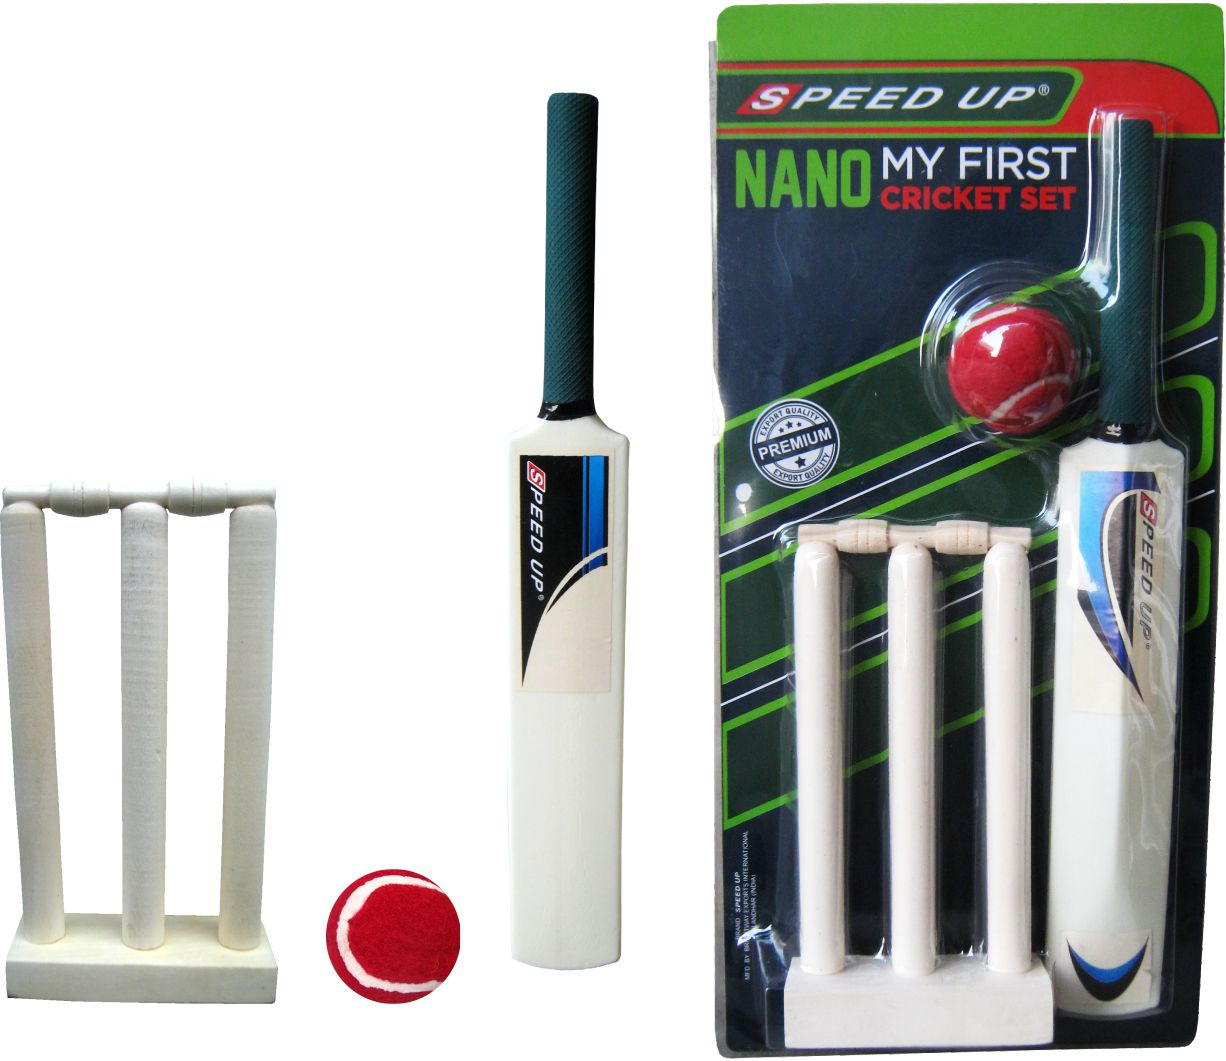 1953 NANO CRICKET SET